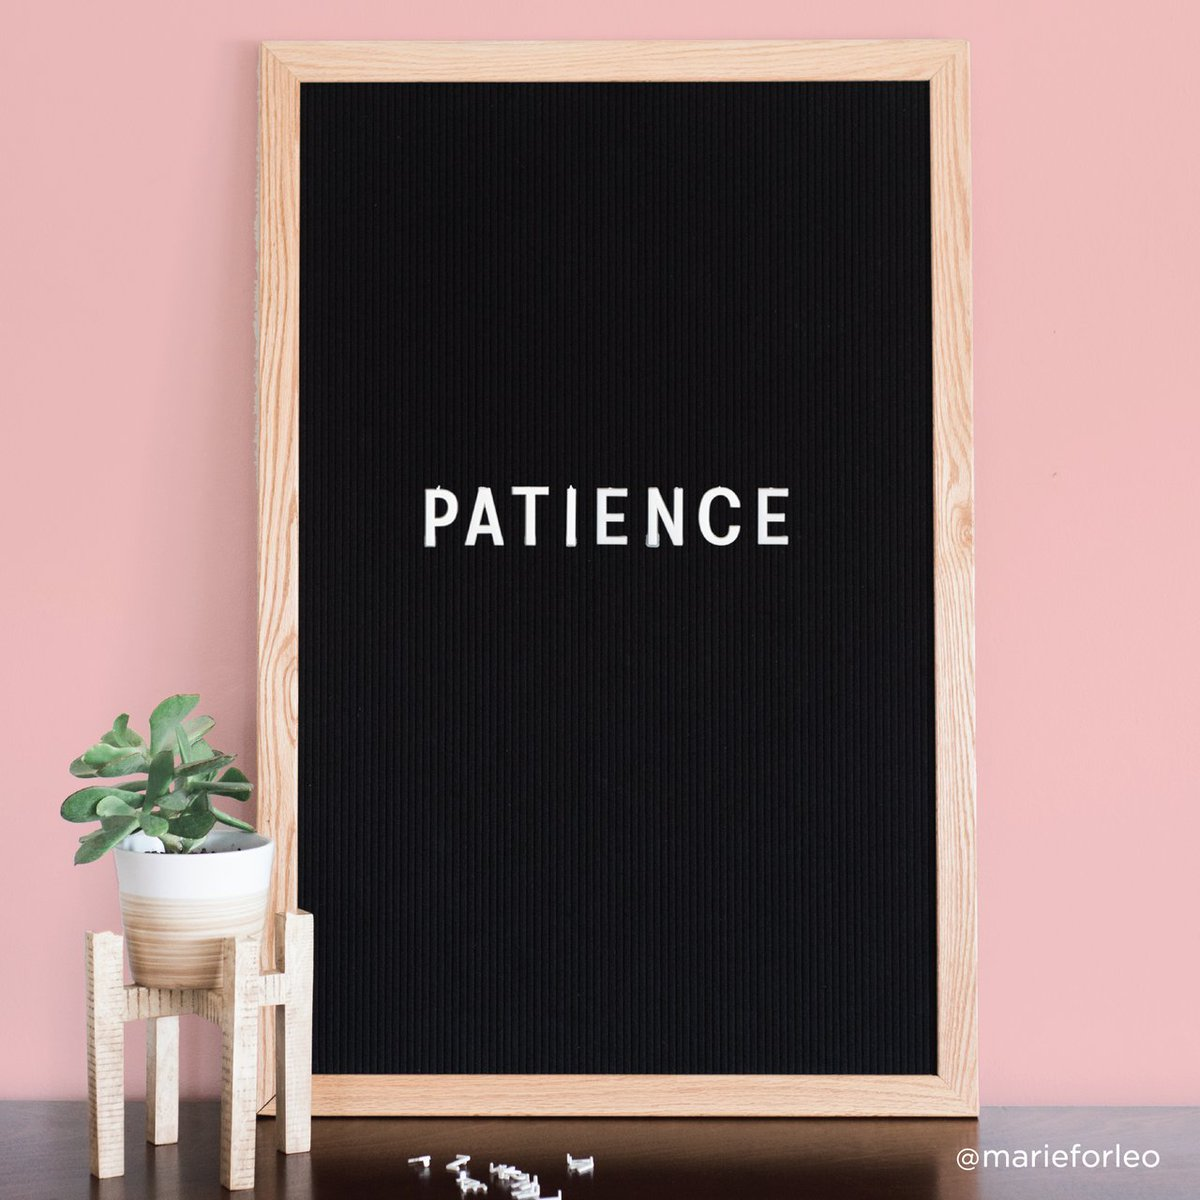 When you&#39;re just starting out, #patience is the MOST important thing to cultivate.     #businessadvice<br>http://pic.twitter.com/lJxTRbz5mf